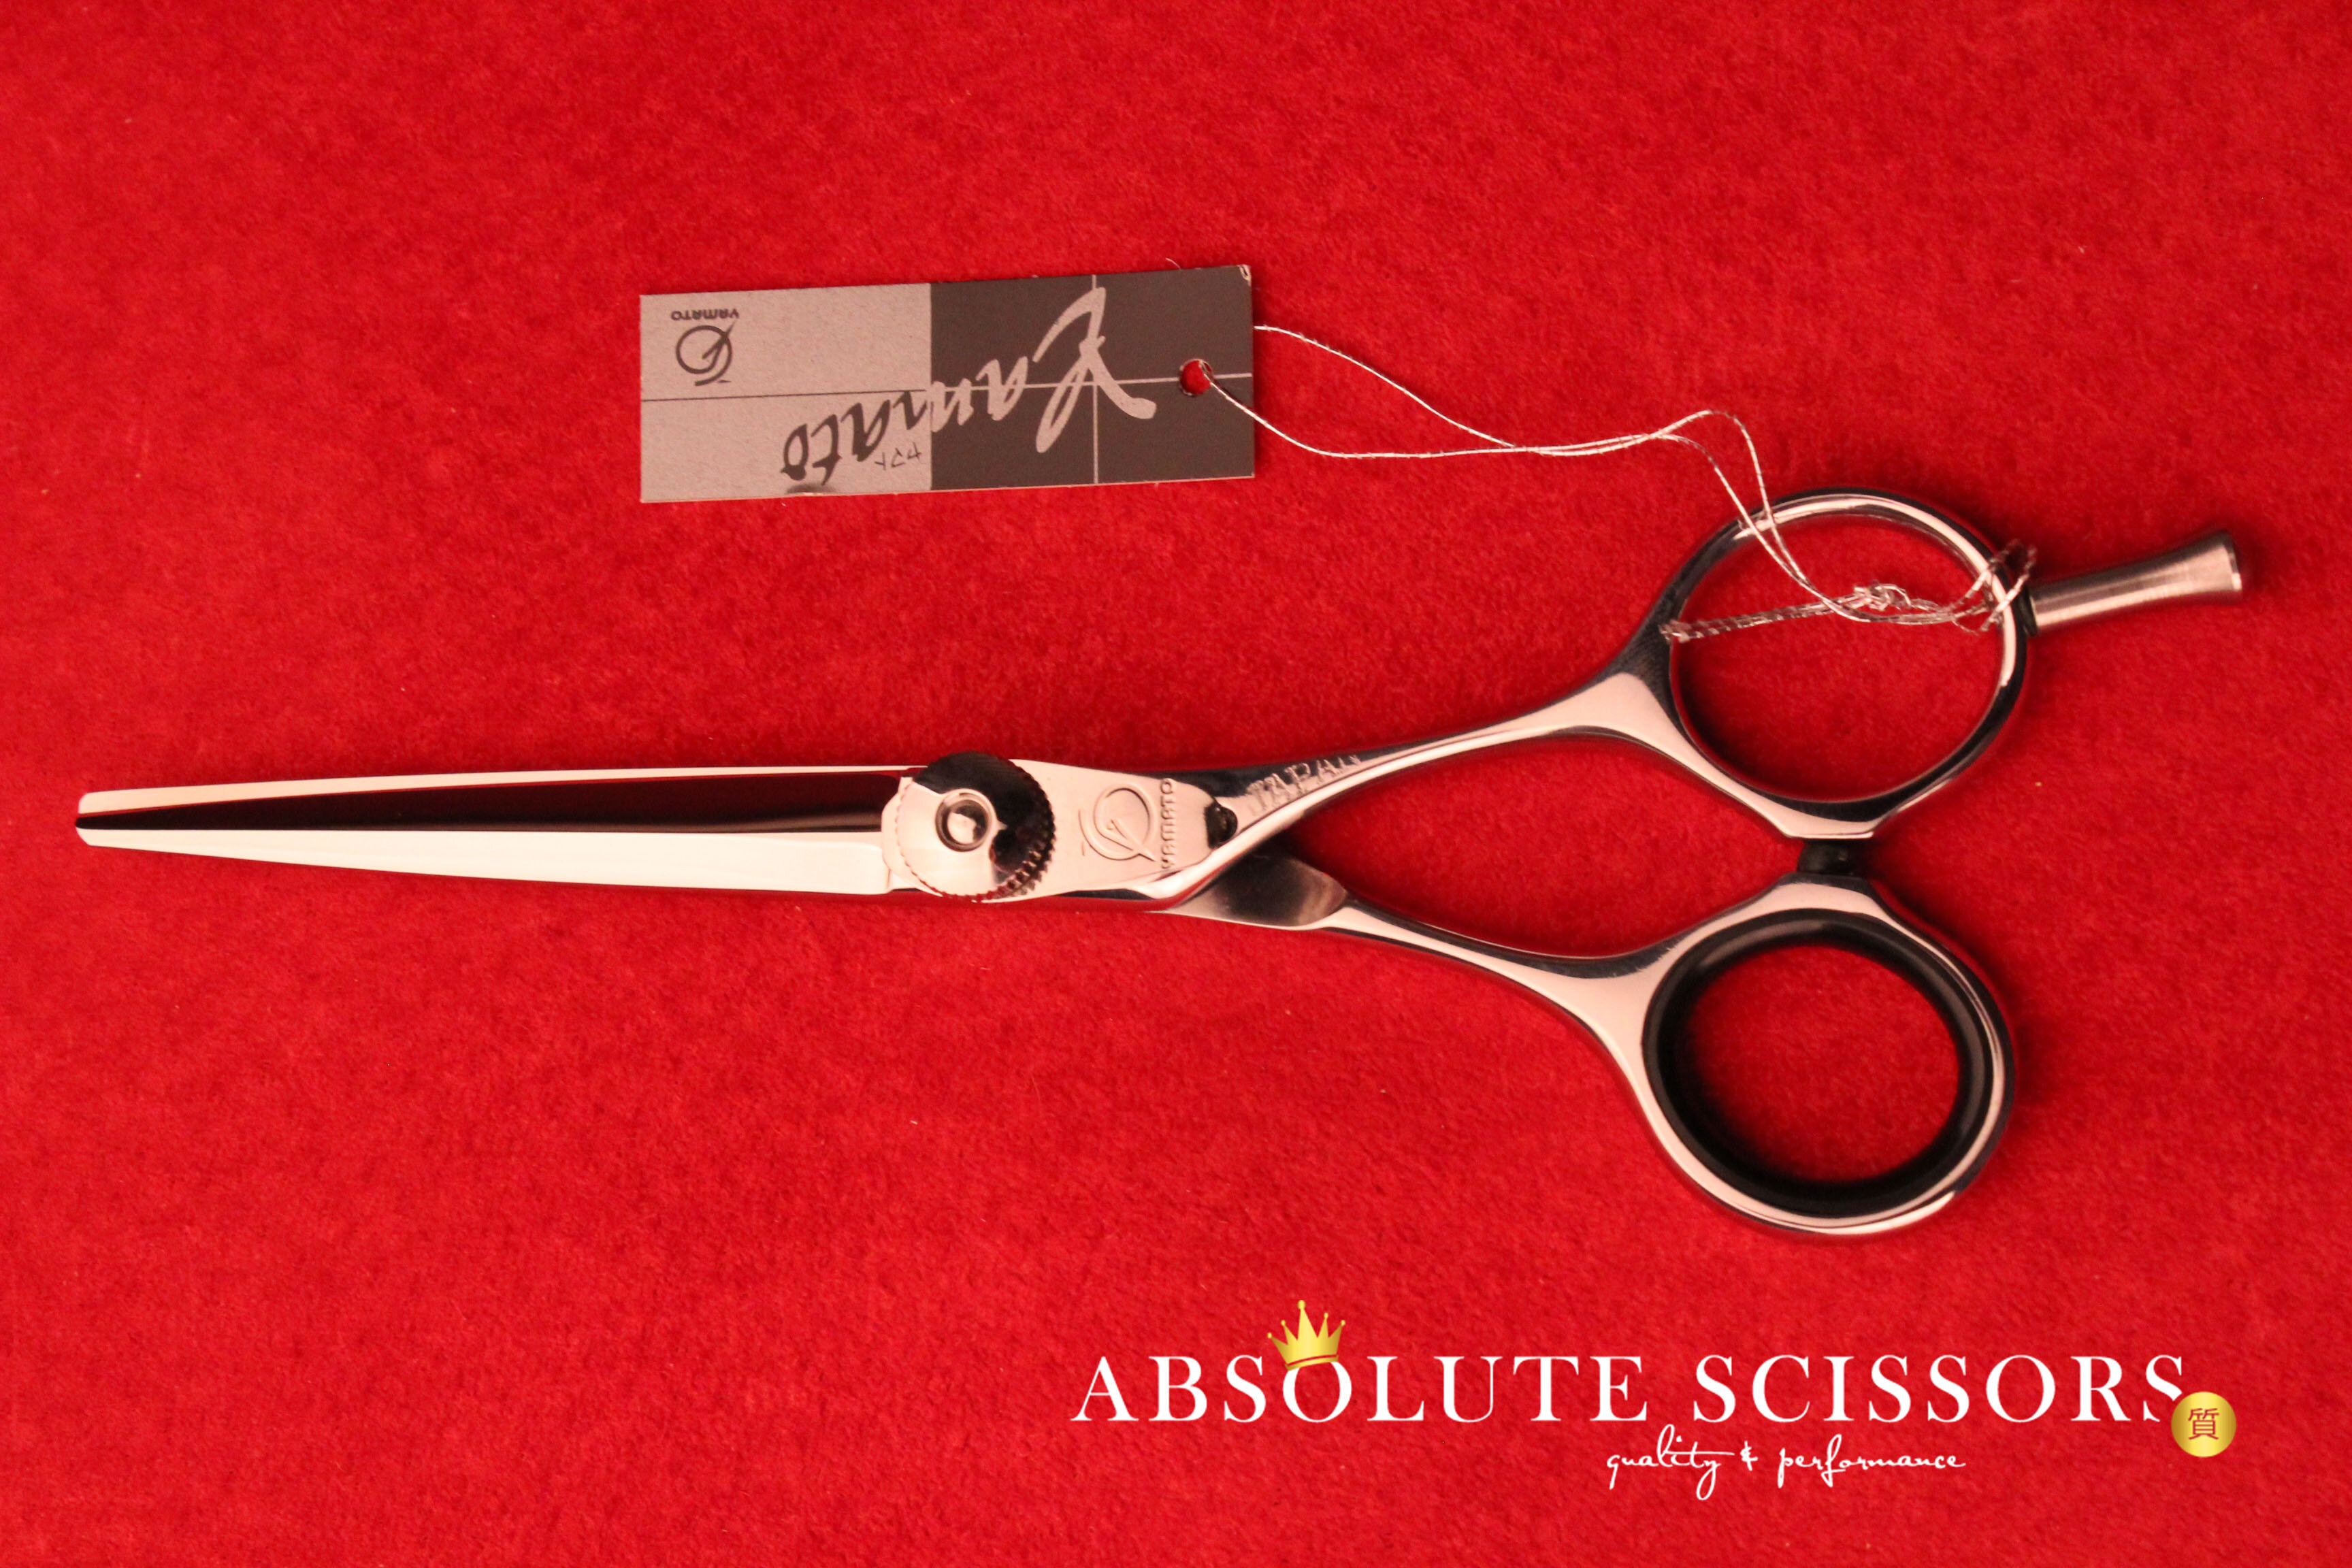 Elite YV55 3790 Yamato hair scissors size 5.5 inches